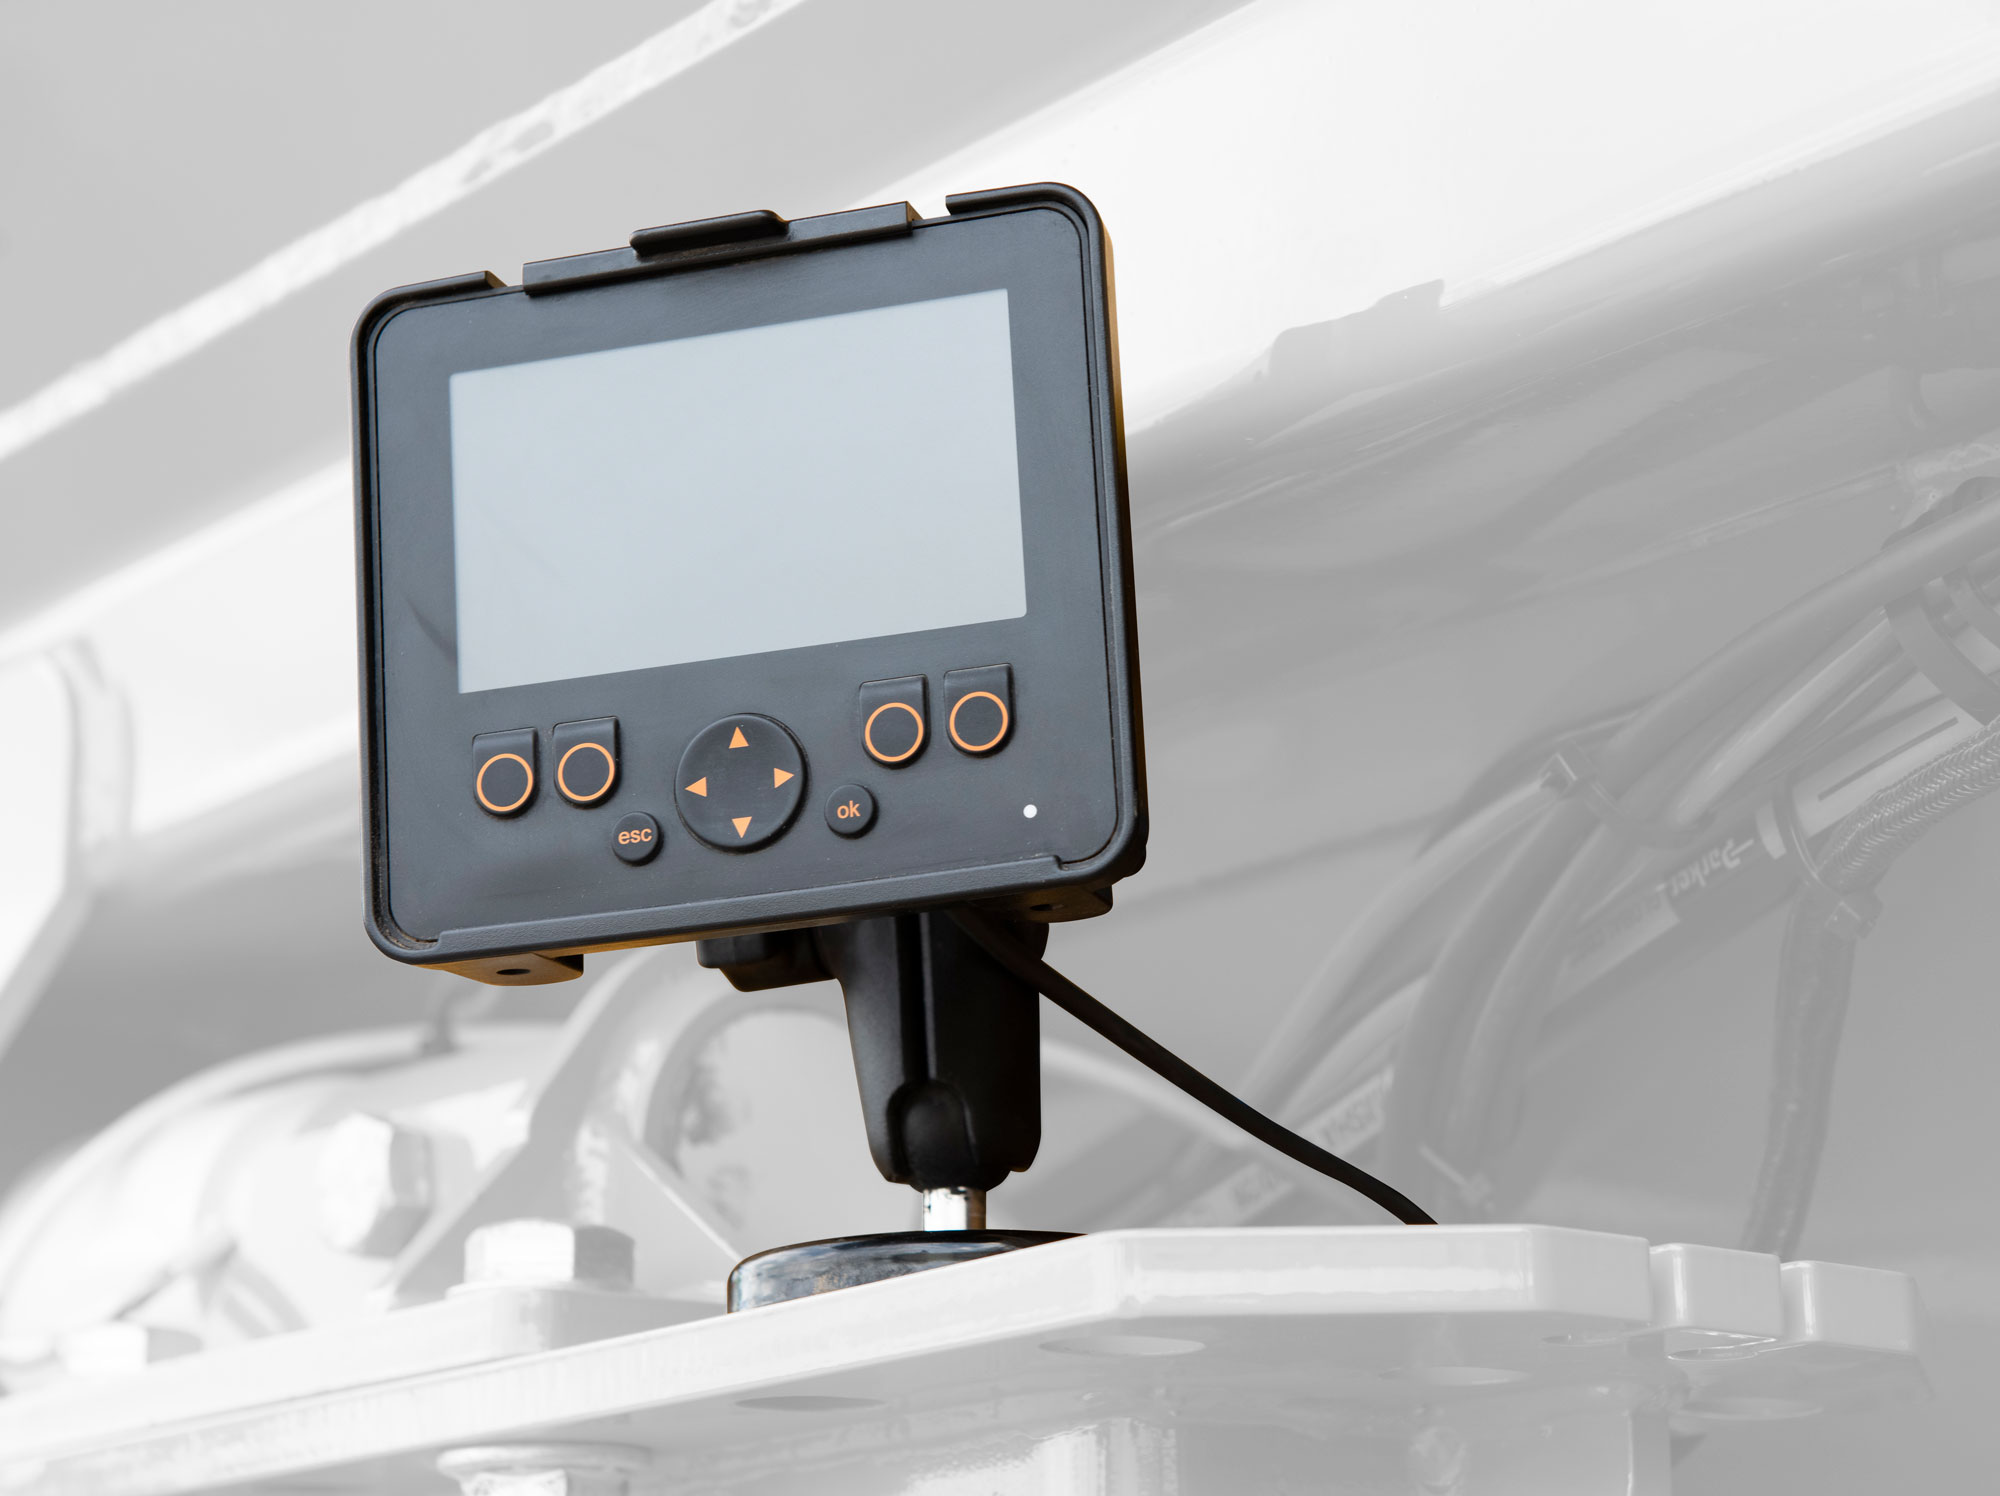 remote-scale-display-01